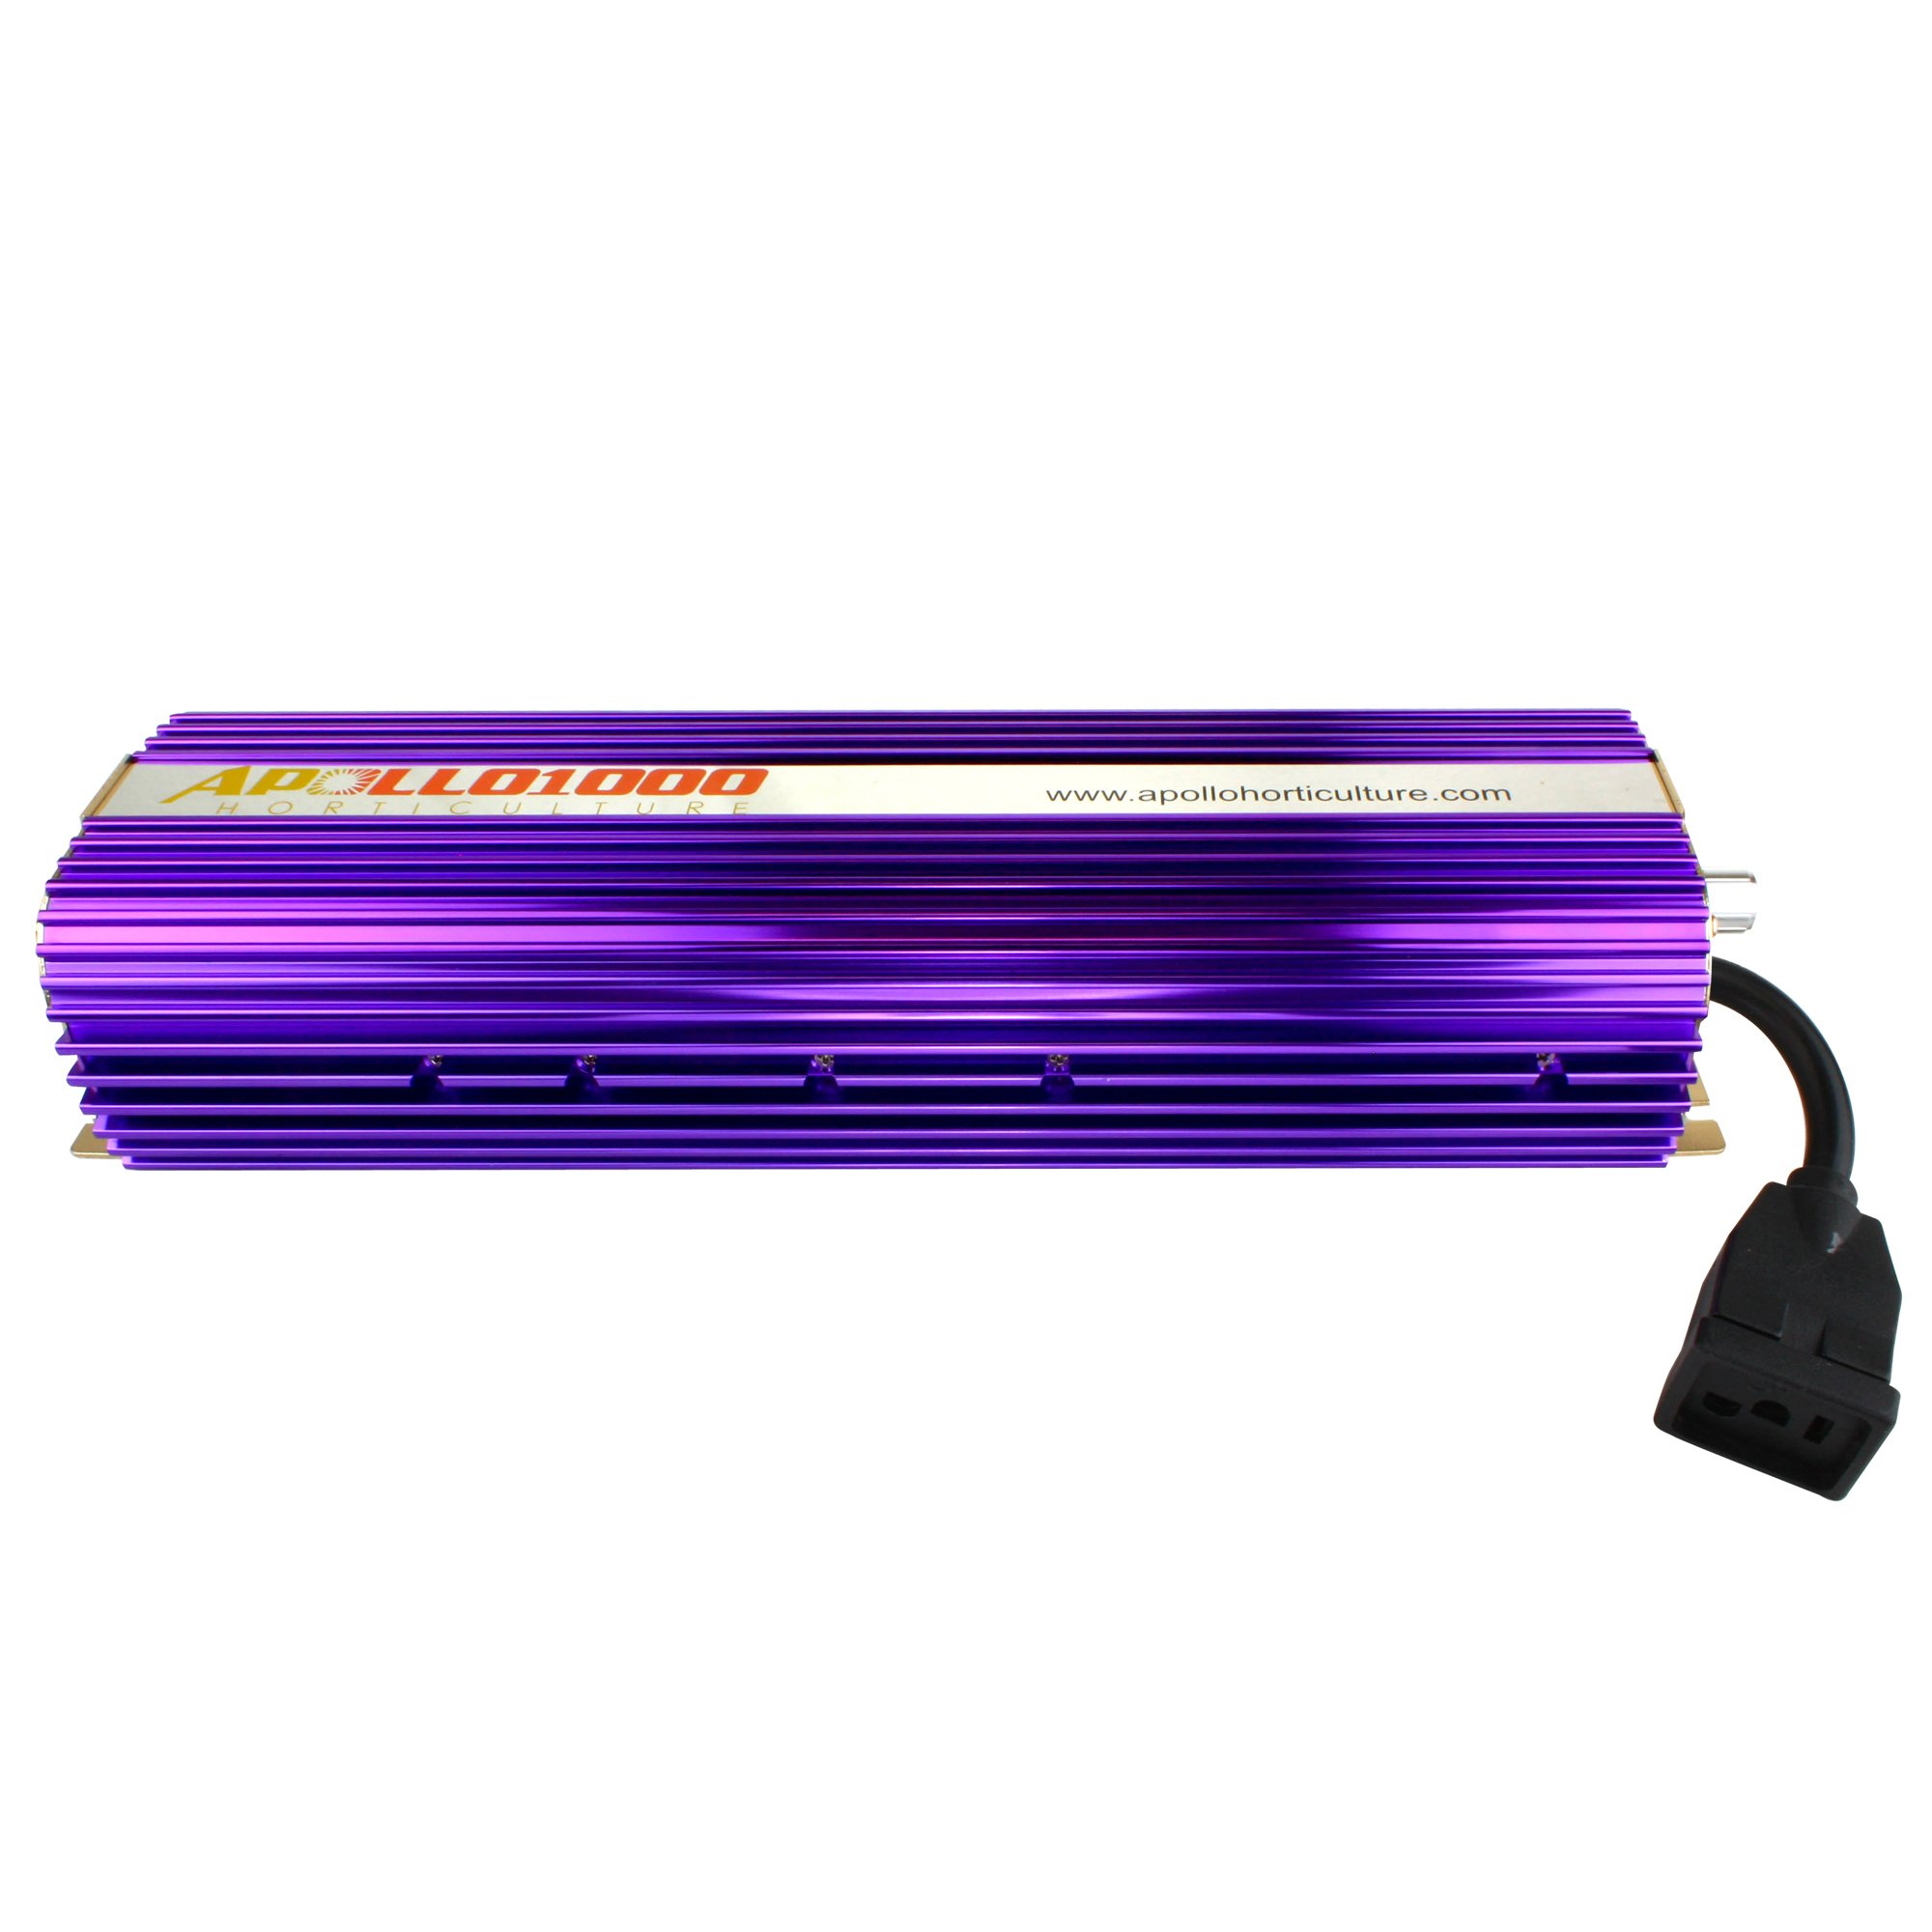 Apollo Horticulture APL1000 Hydroponic 1000 - Watt HPS MH Digital Dimmable Electronic Ballast by Apollo Horticulture (Image #2)